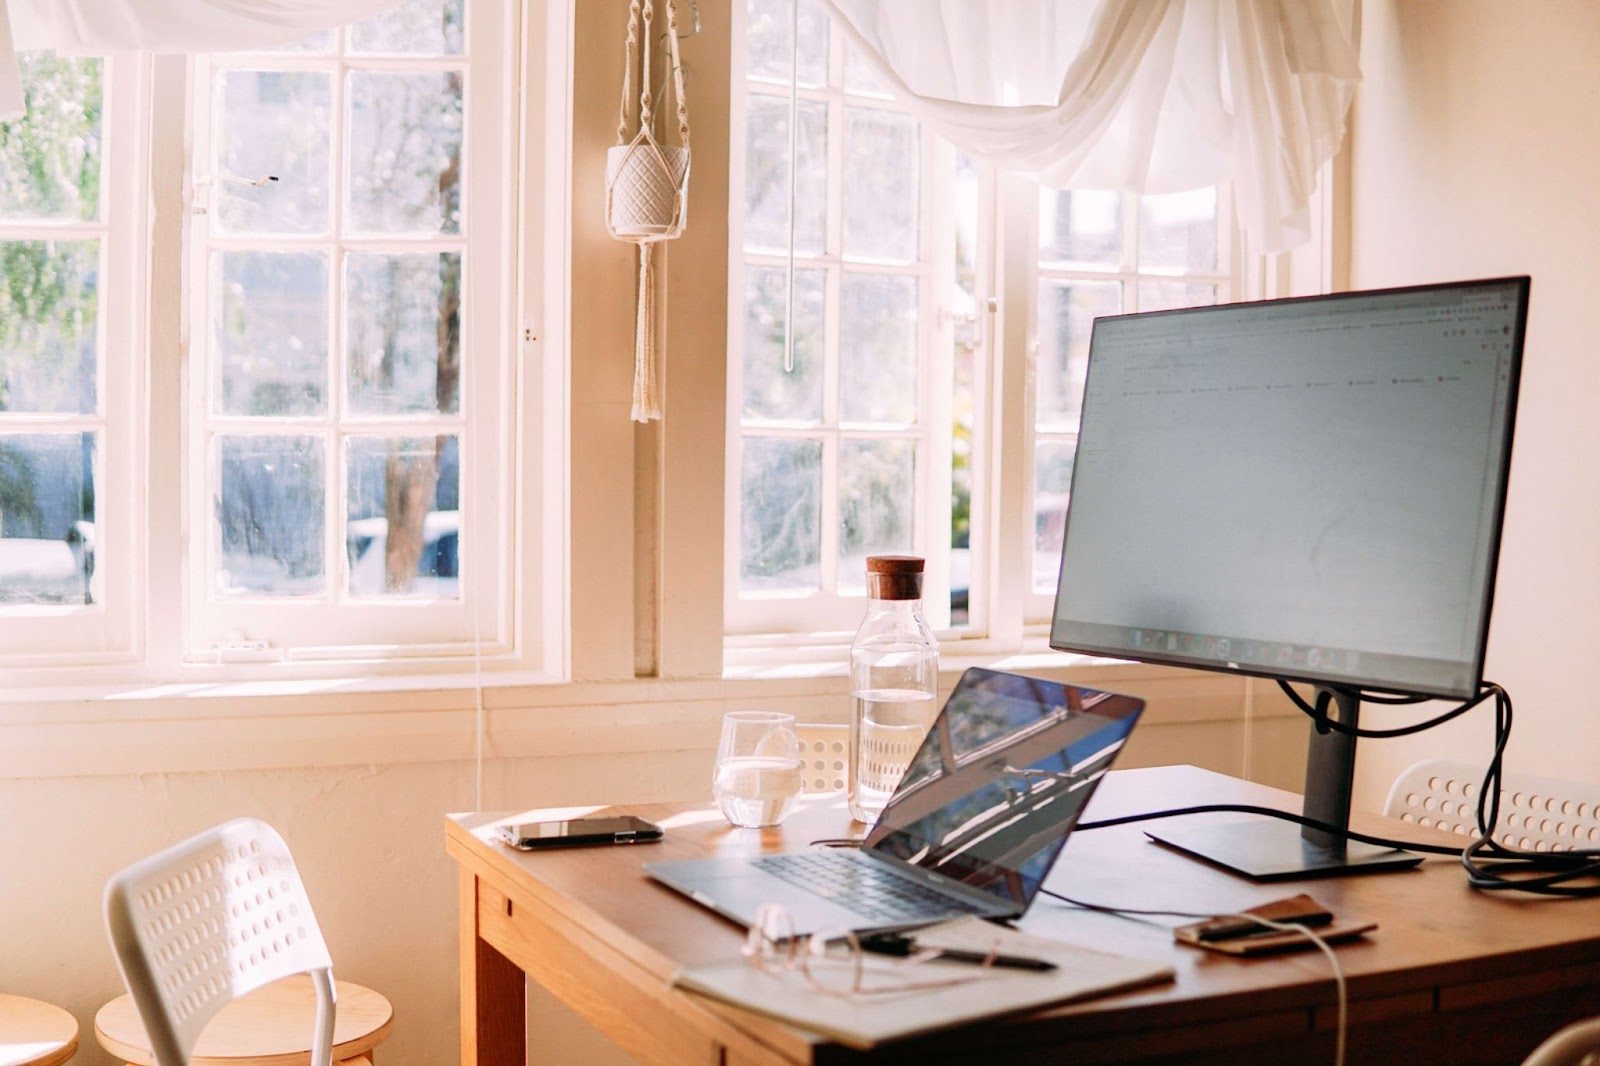 A home office setting with computers